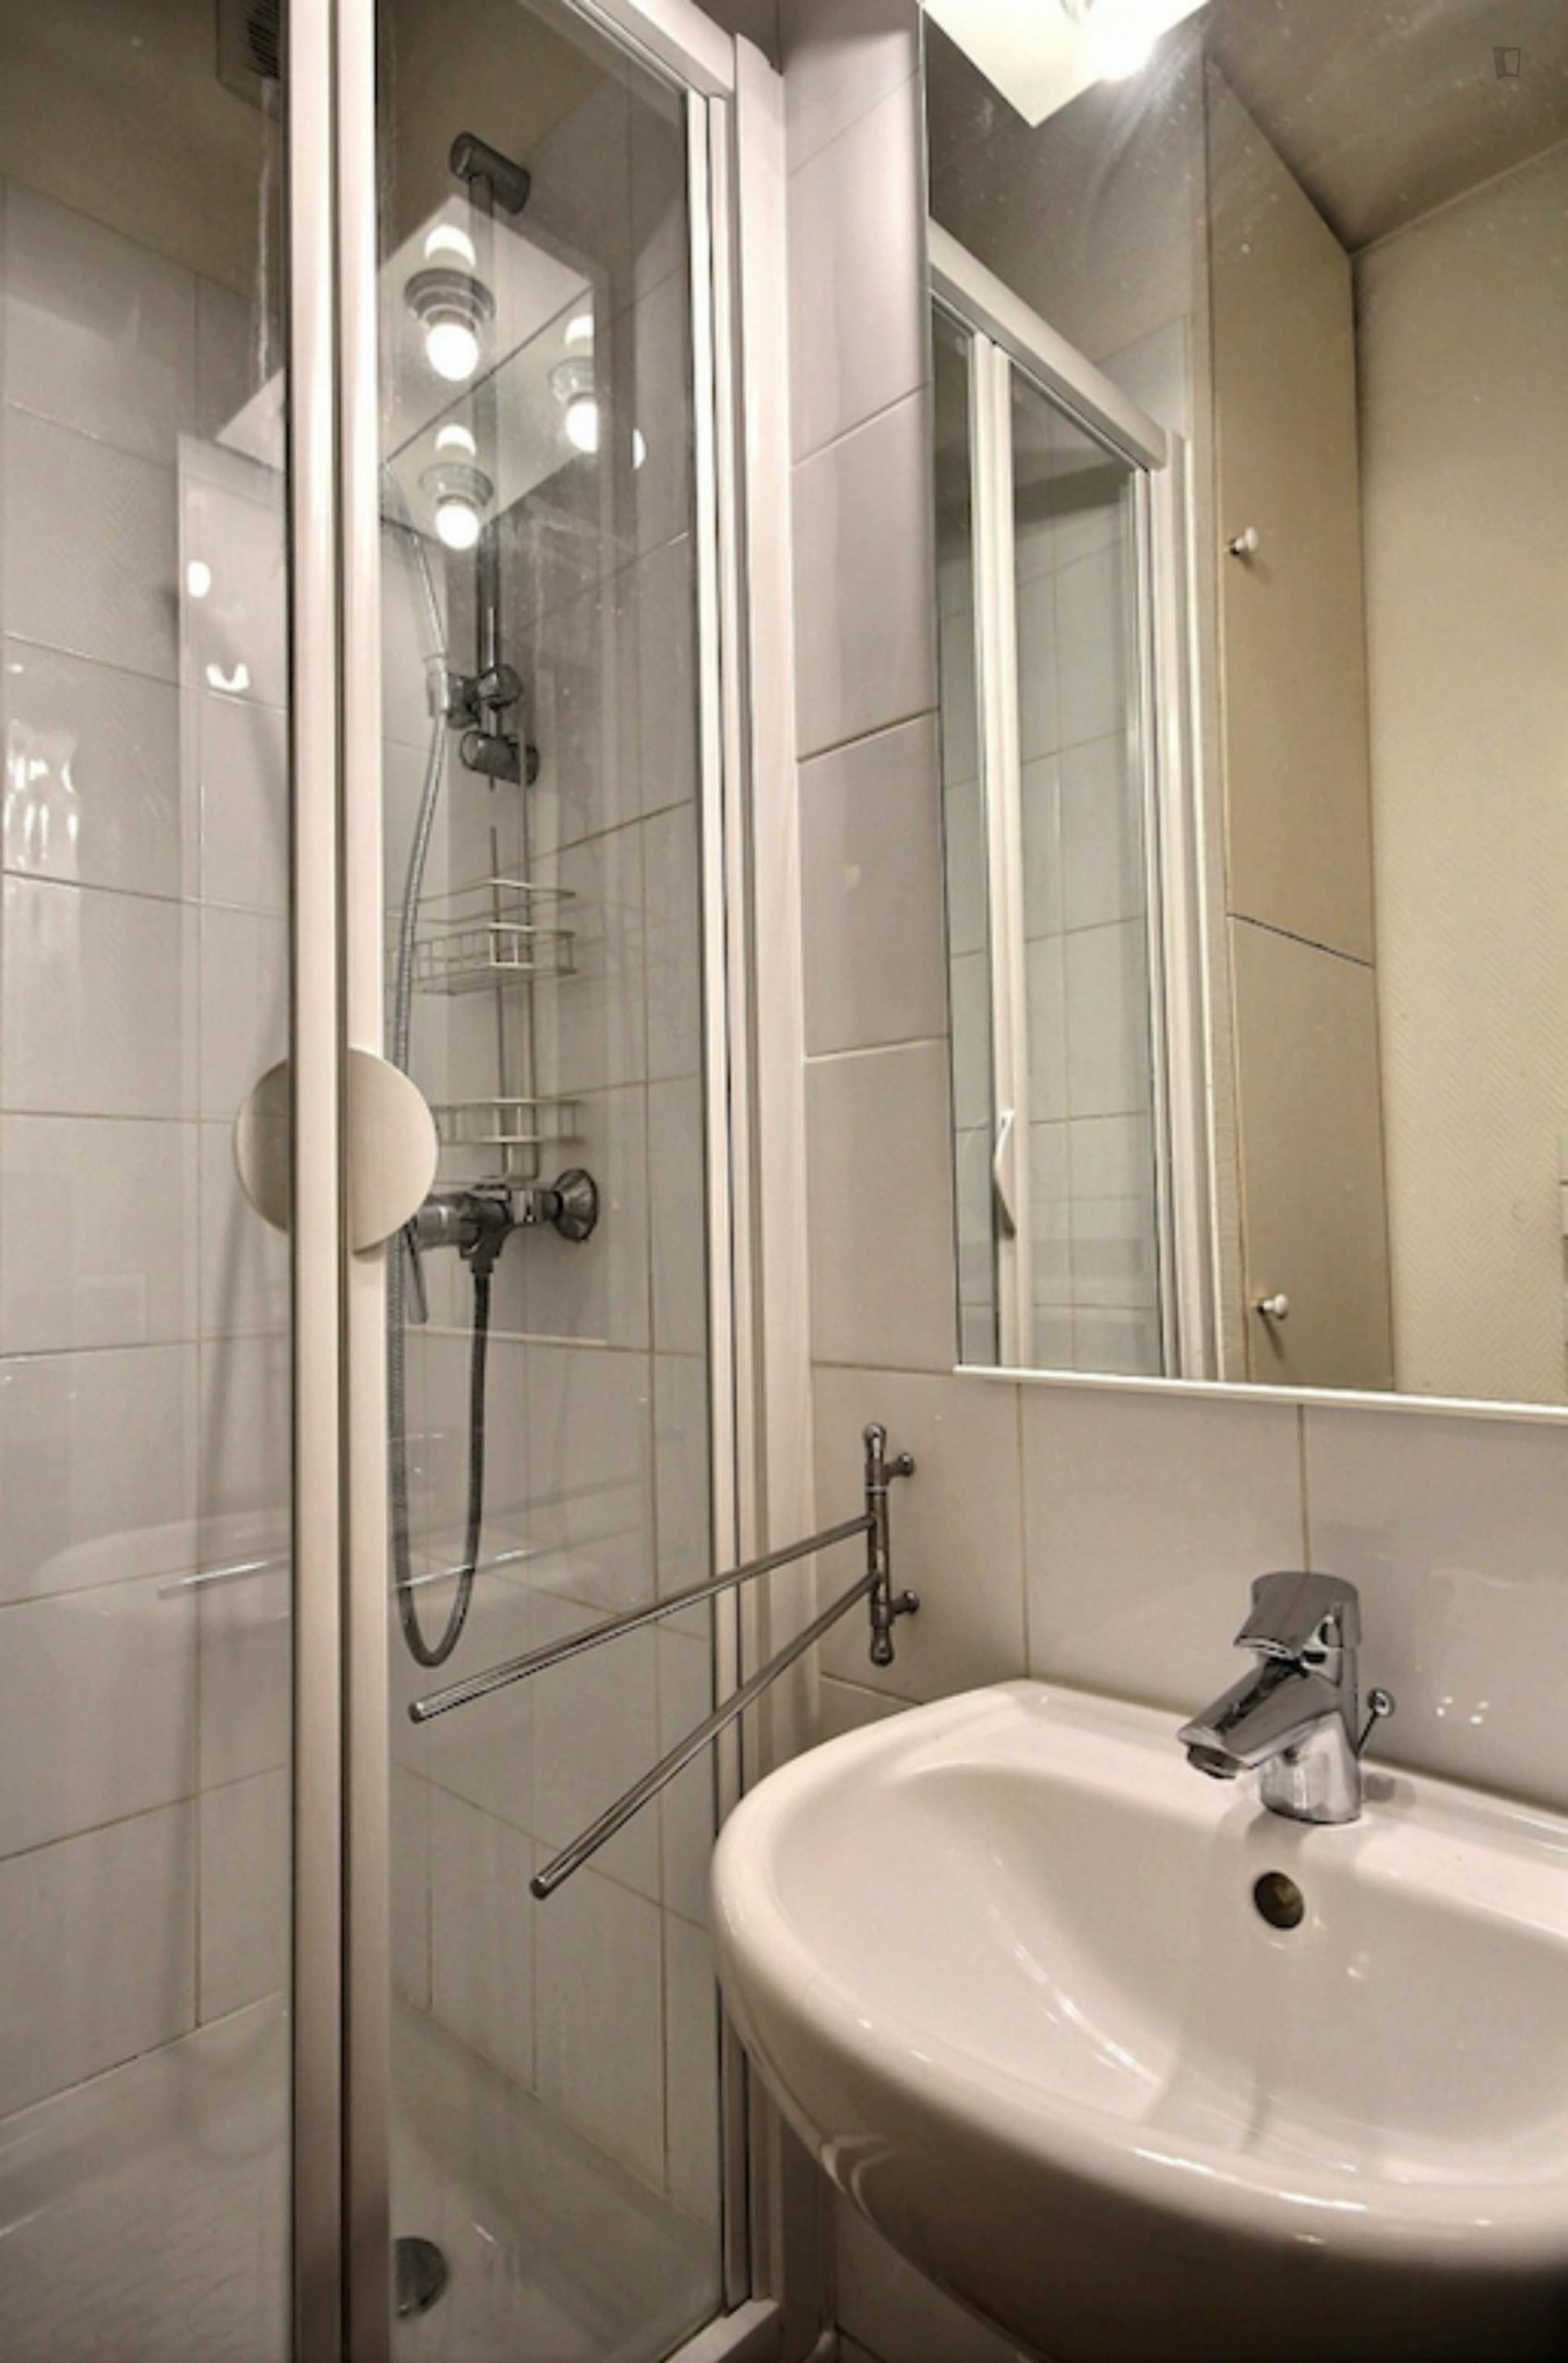 Vaugigard- Cozy Flat with View in Paris for Expat